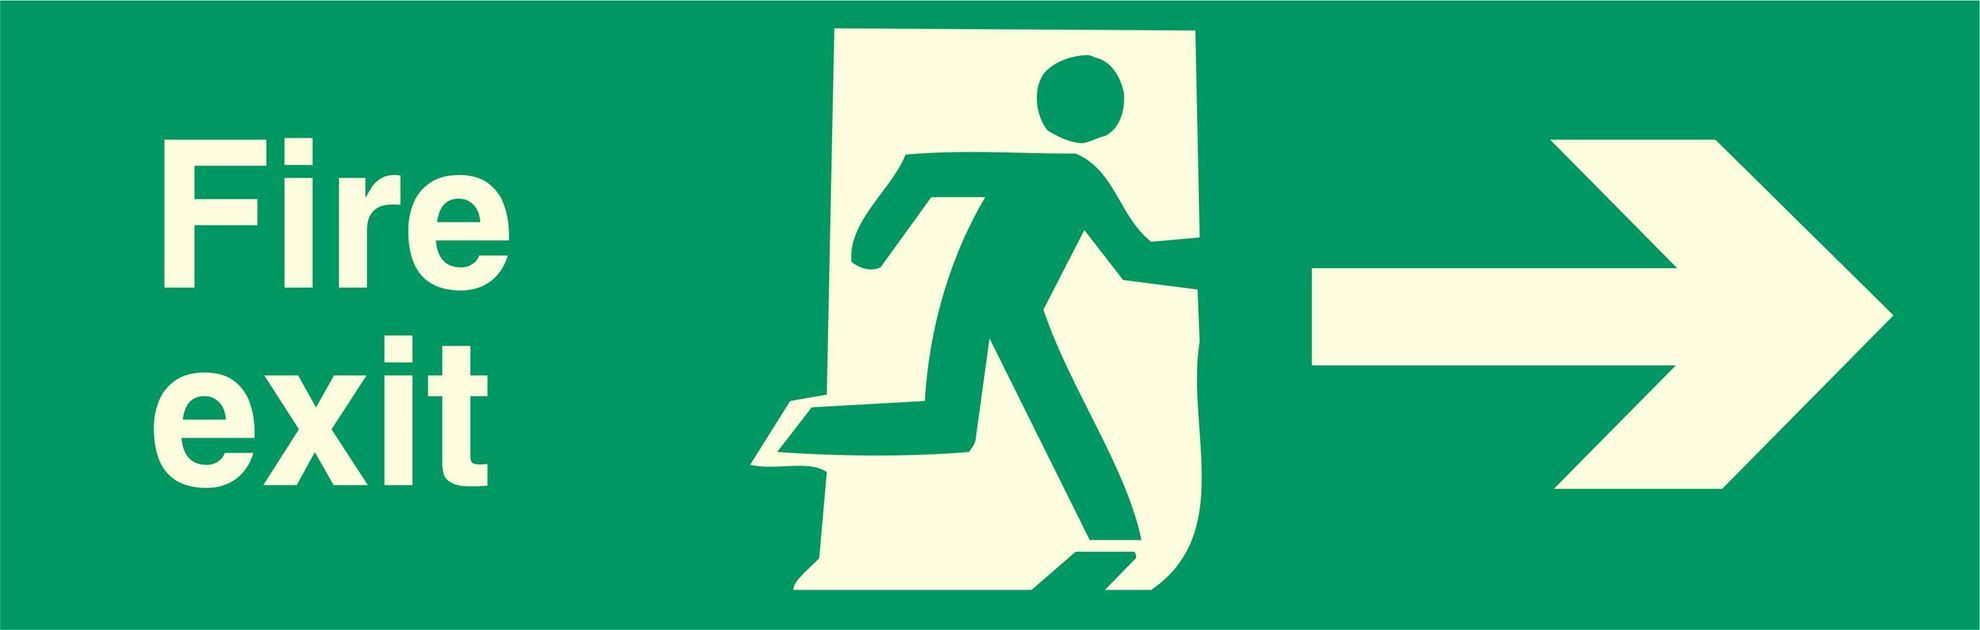 Fire exit - Running Man Right - Right Arrow